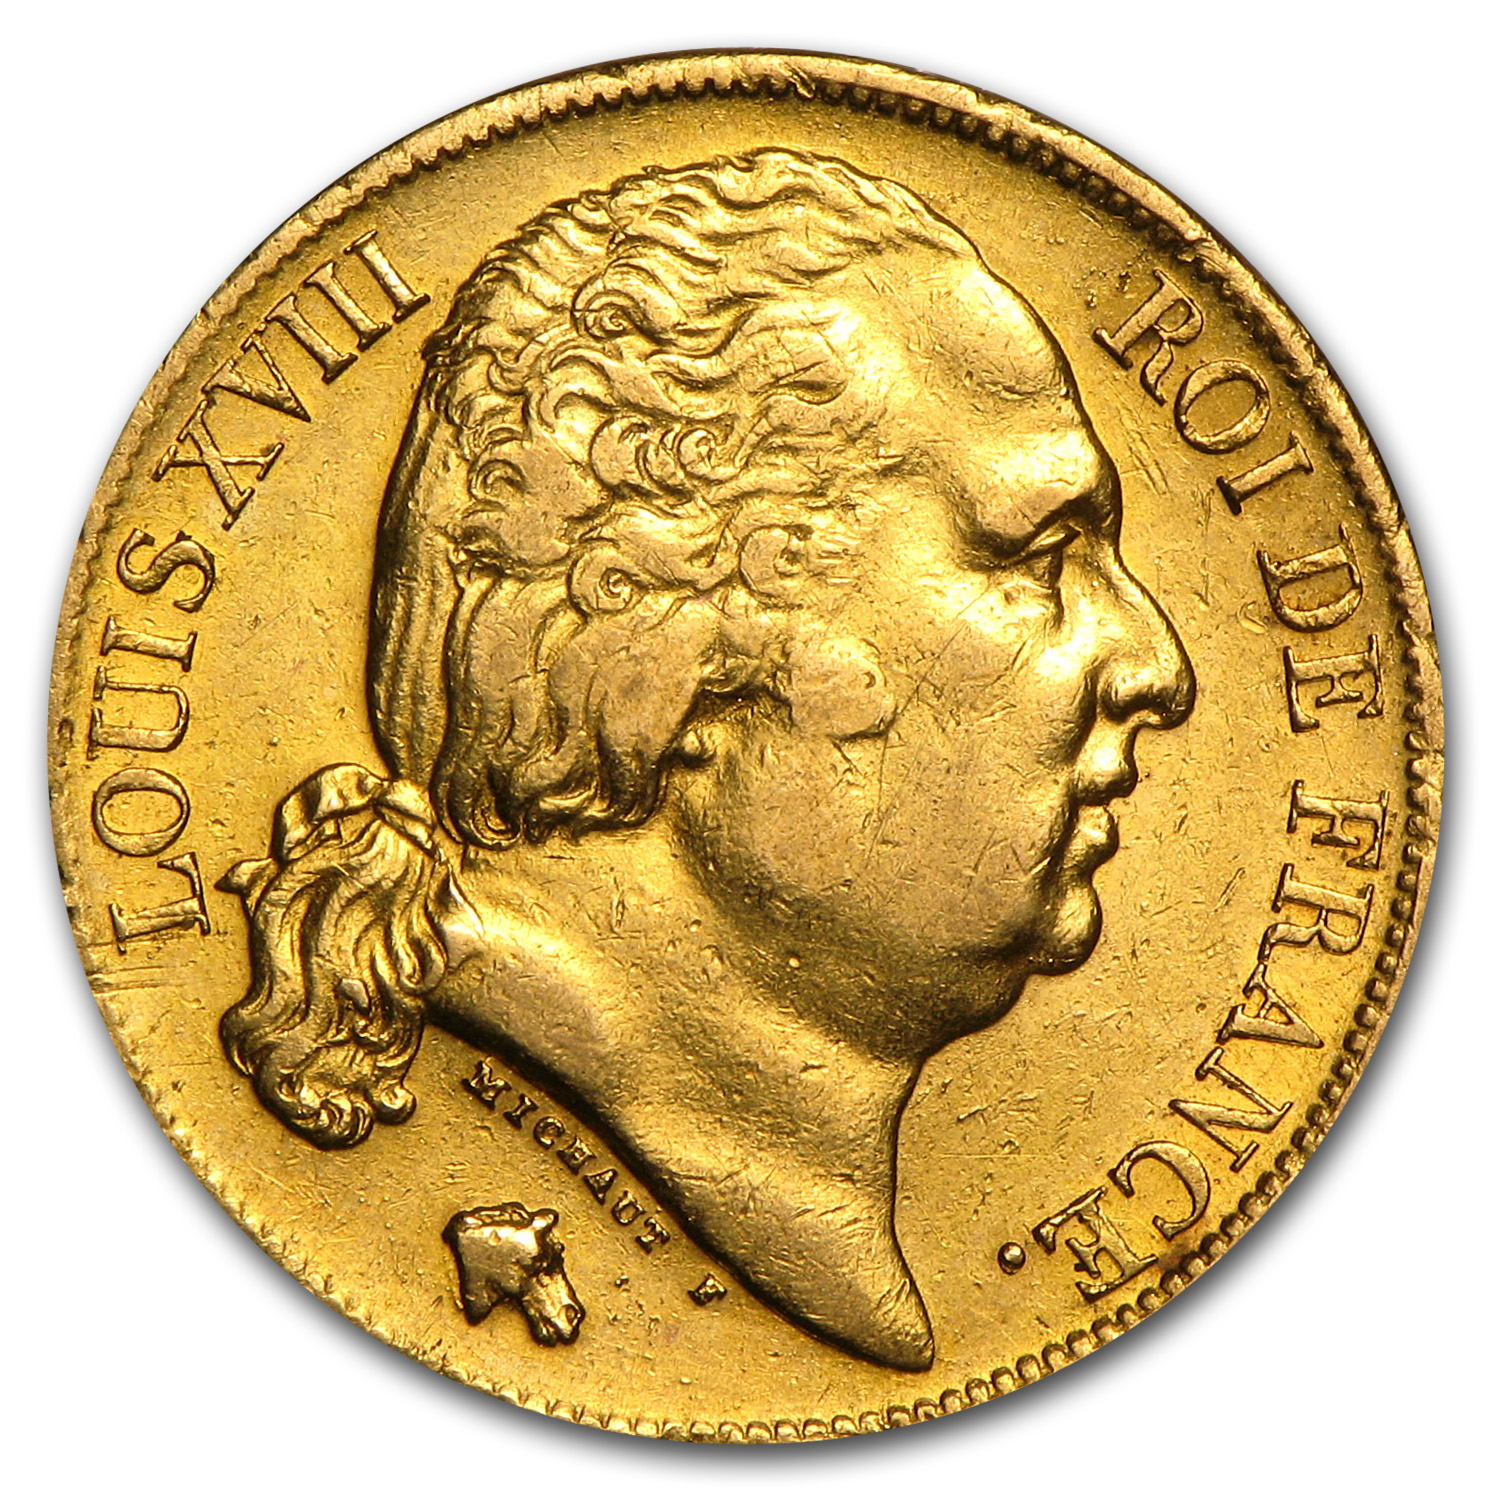 France Gold 20 France (1816-1824 Louis XVIII) (XF)